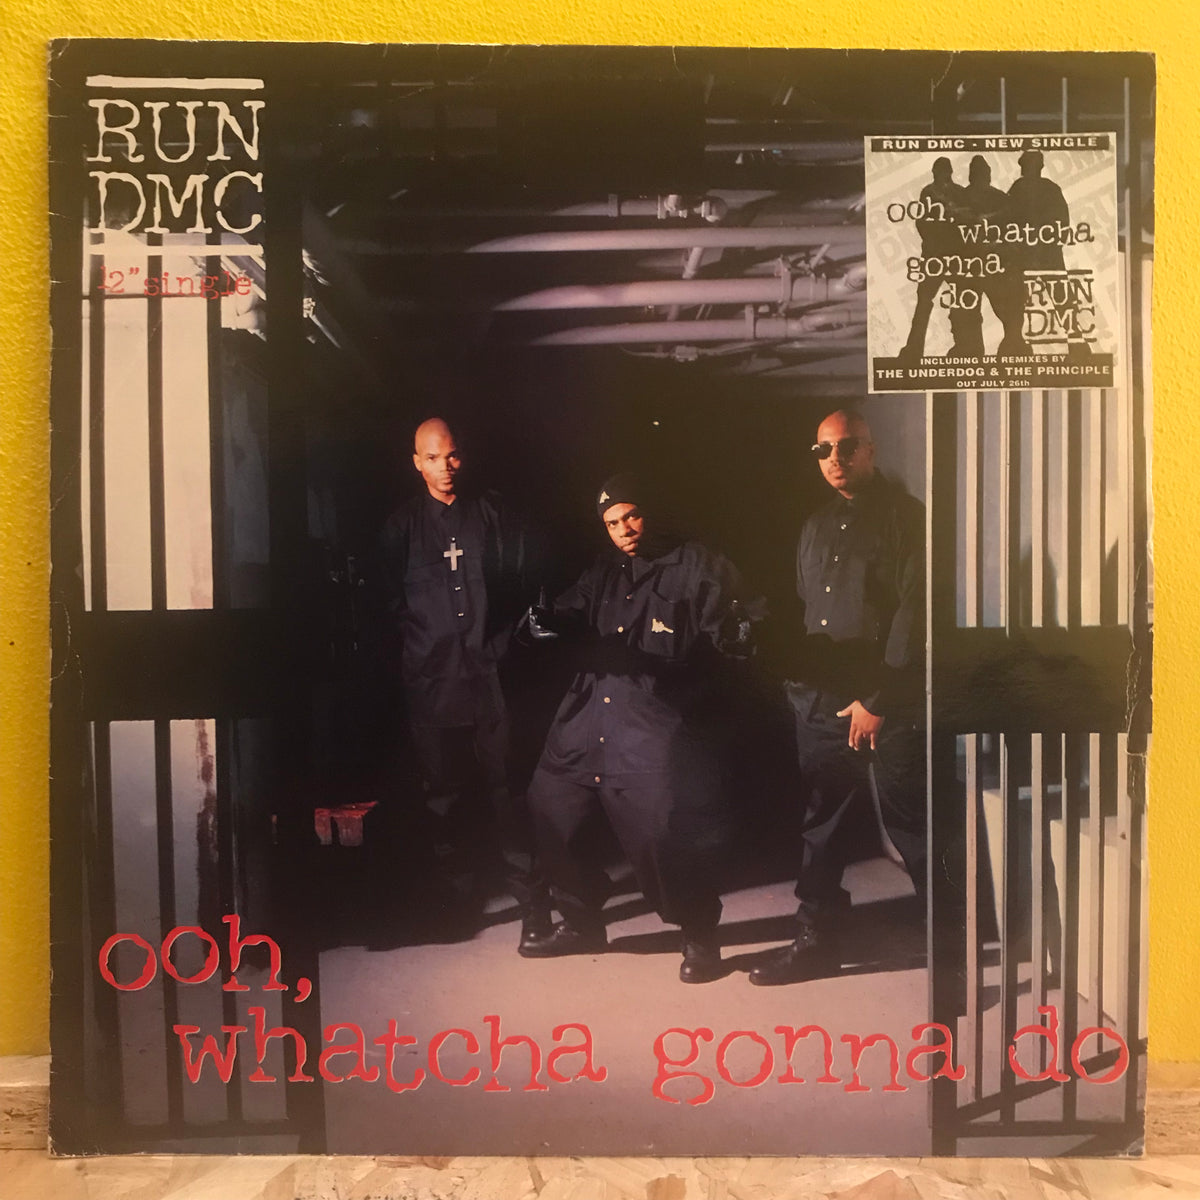 Run DMC - Ooh Watch Gonna Do - 12